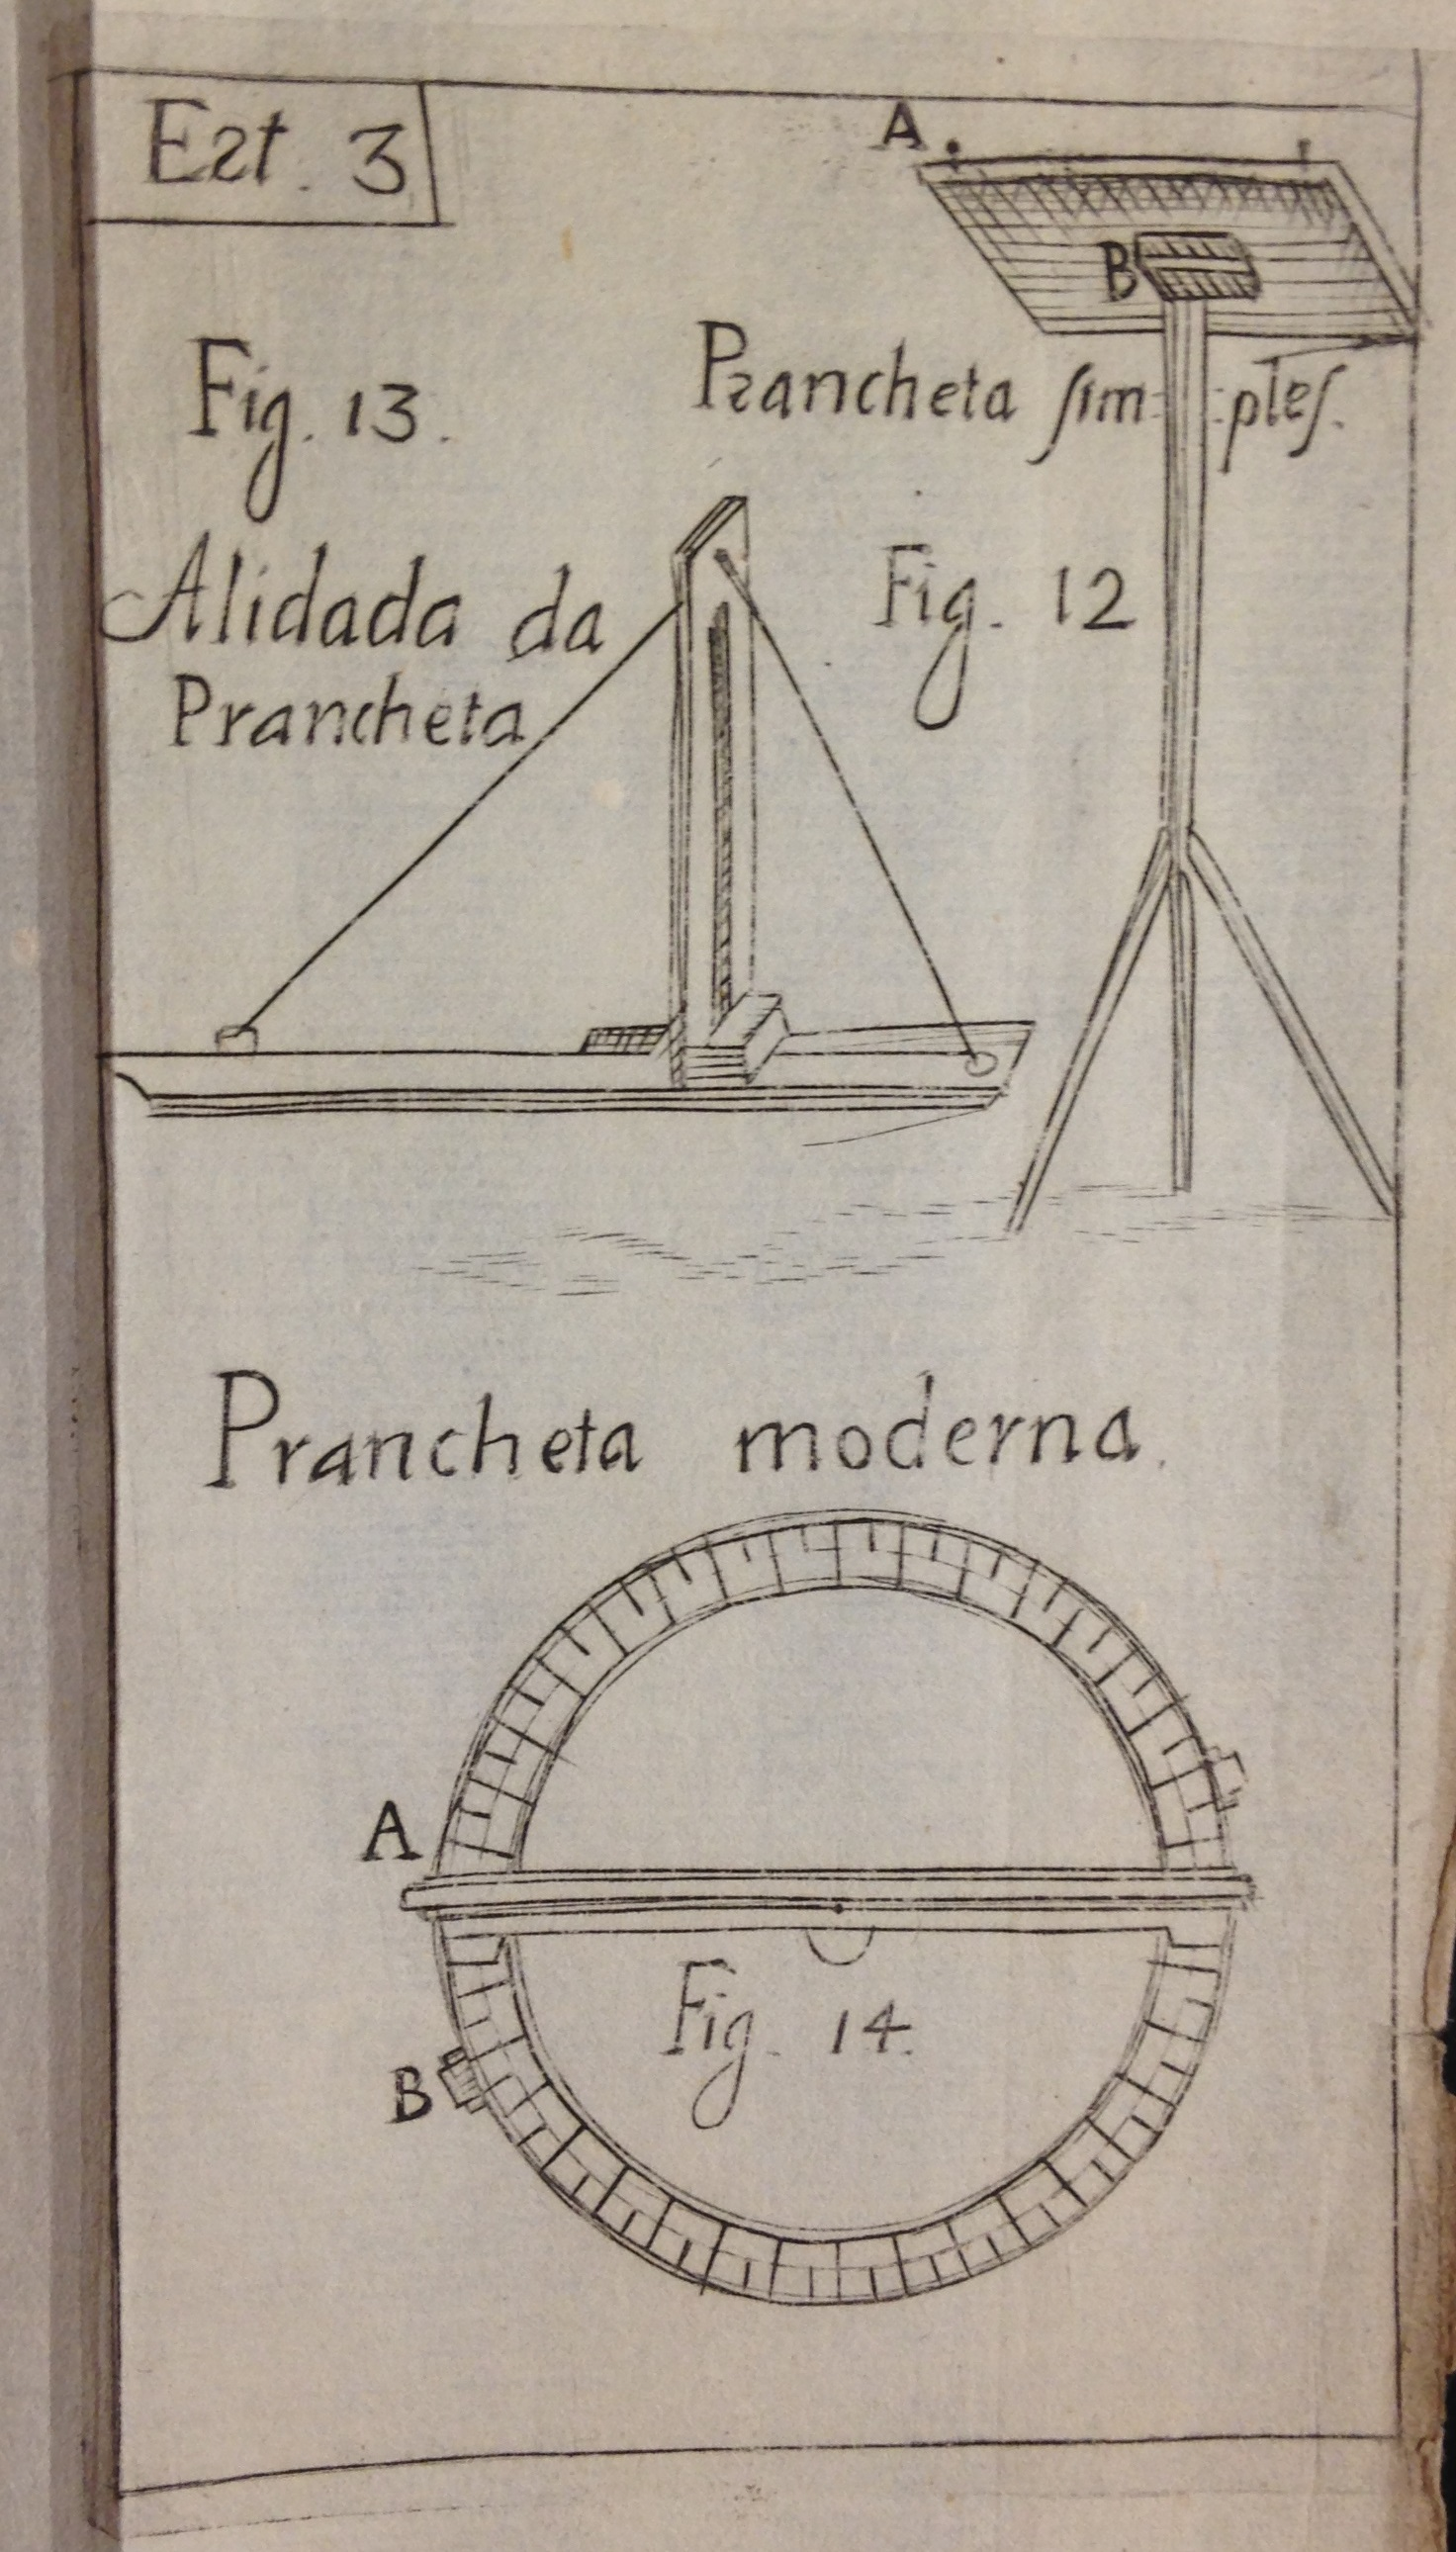 A cartographer's tools, from Manoel de Azevedo Fortes, Tratado do modo o mais facil, e o mais exacto de fazer as cartas geograficas (Lisbon, 1722), plate 3.   (GA102.3 .F67 1722)